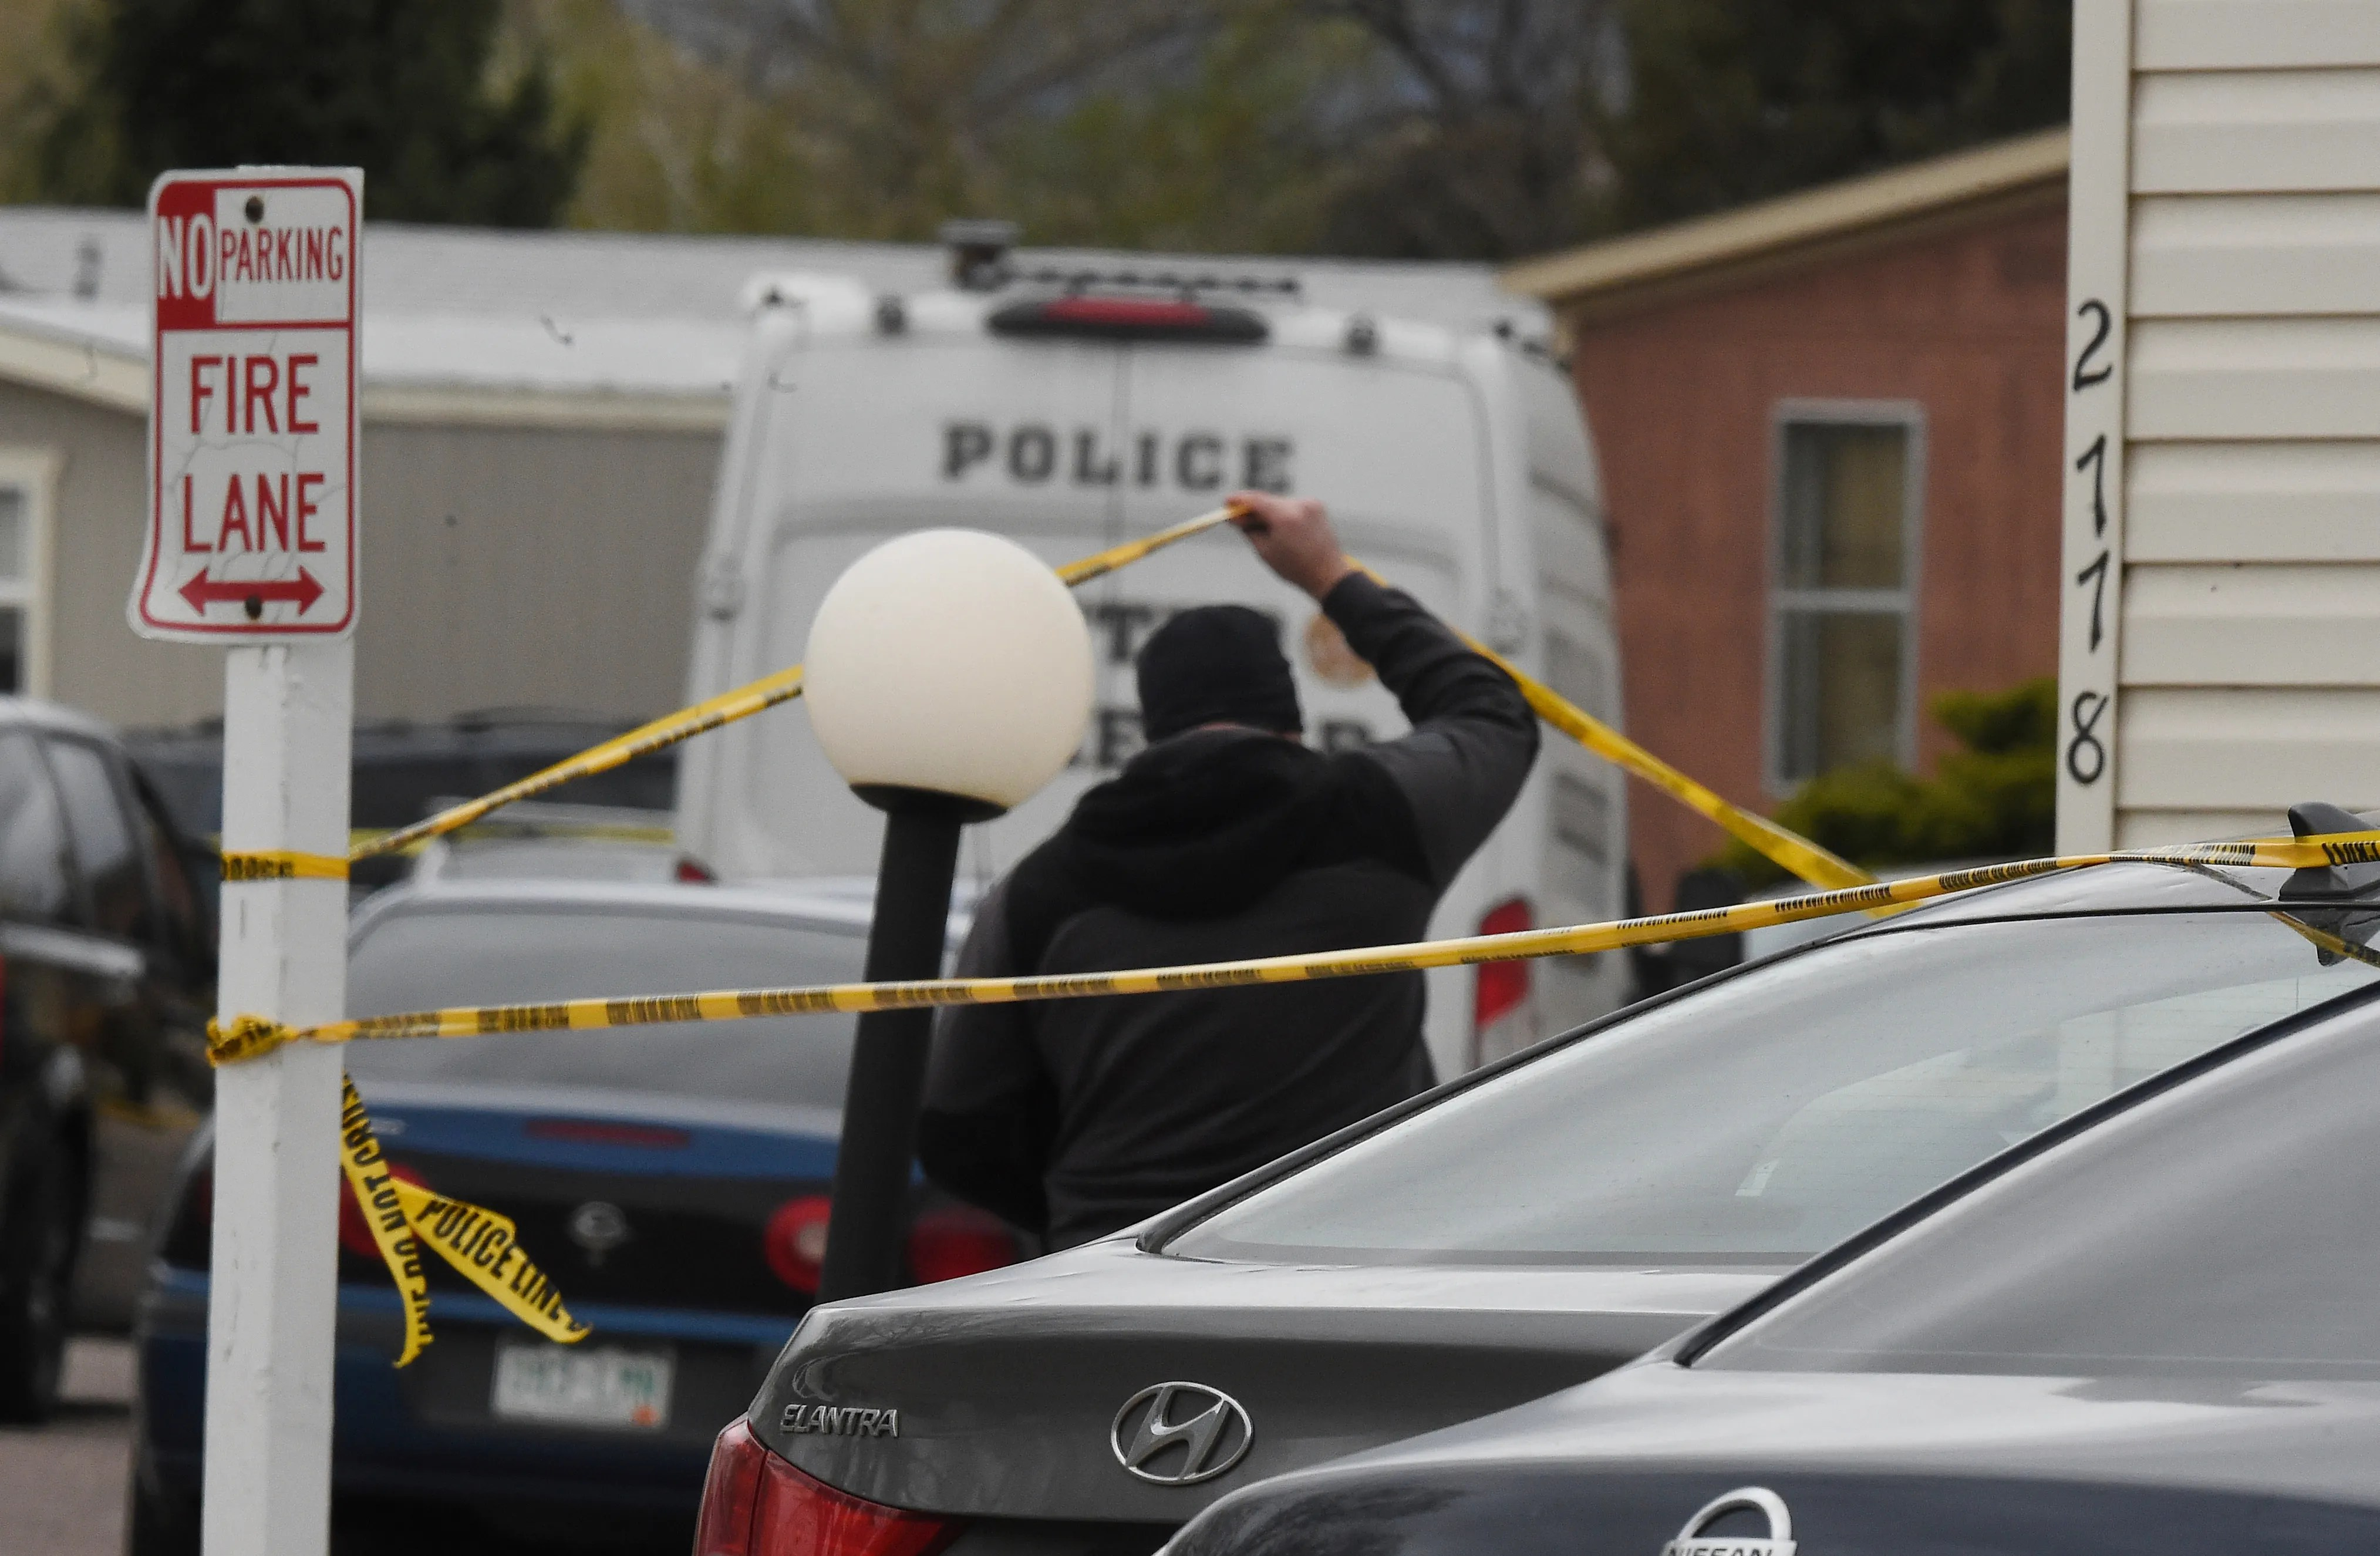 A Colorado Springs Police Department officer lifts up crime tape at the scene where multiple people were shot and killed early Sunday, May 9, 2021, in Colorado Springs, Colo.